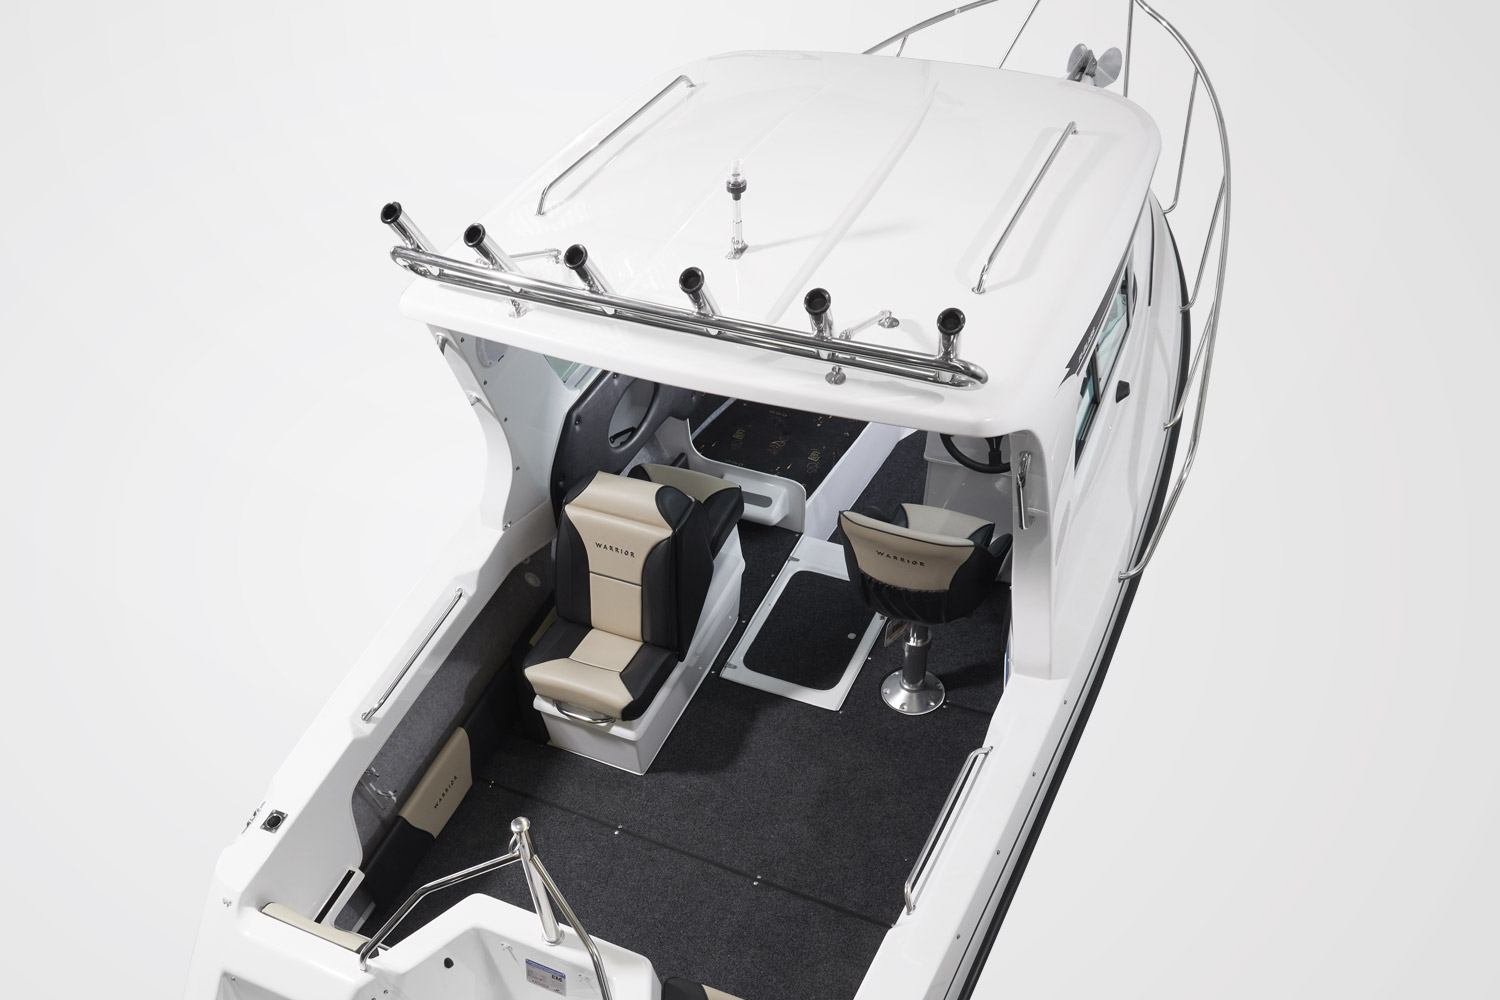 warrior-hardtop-internal1.jpg